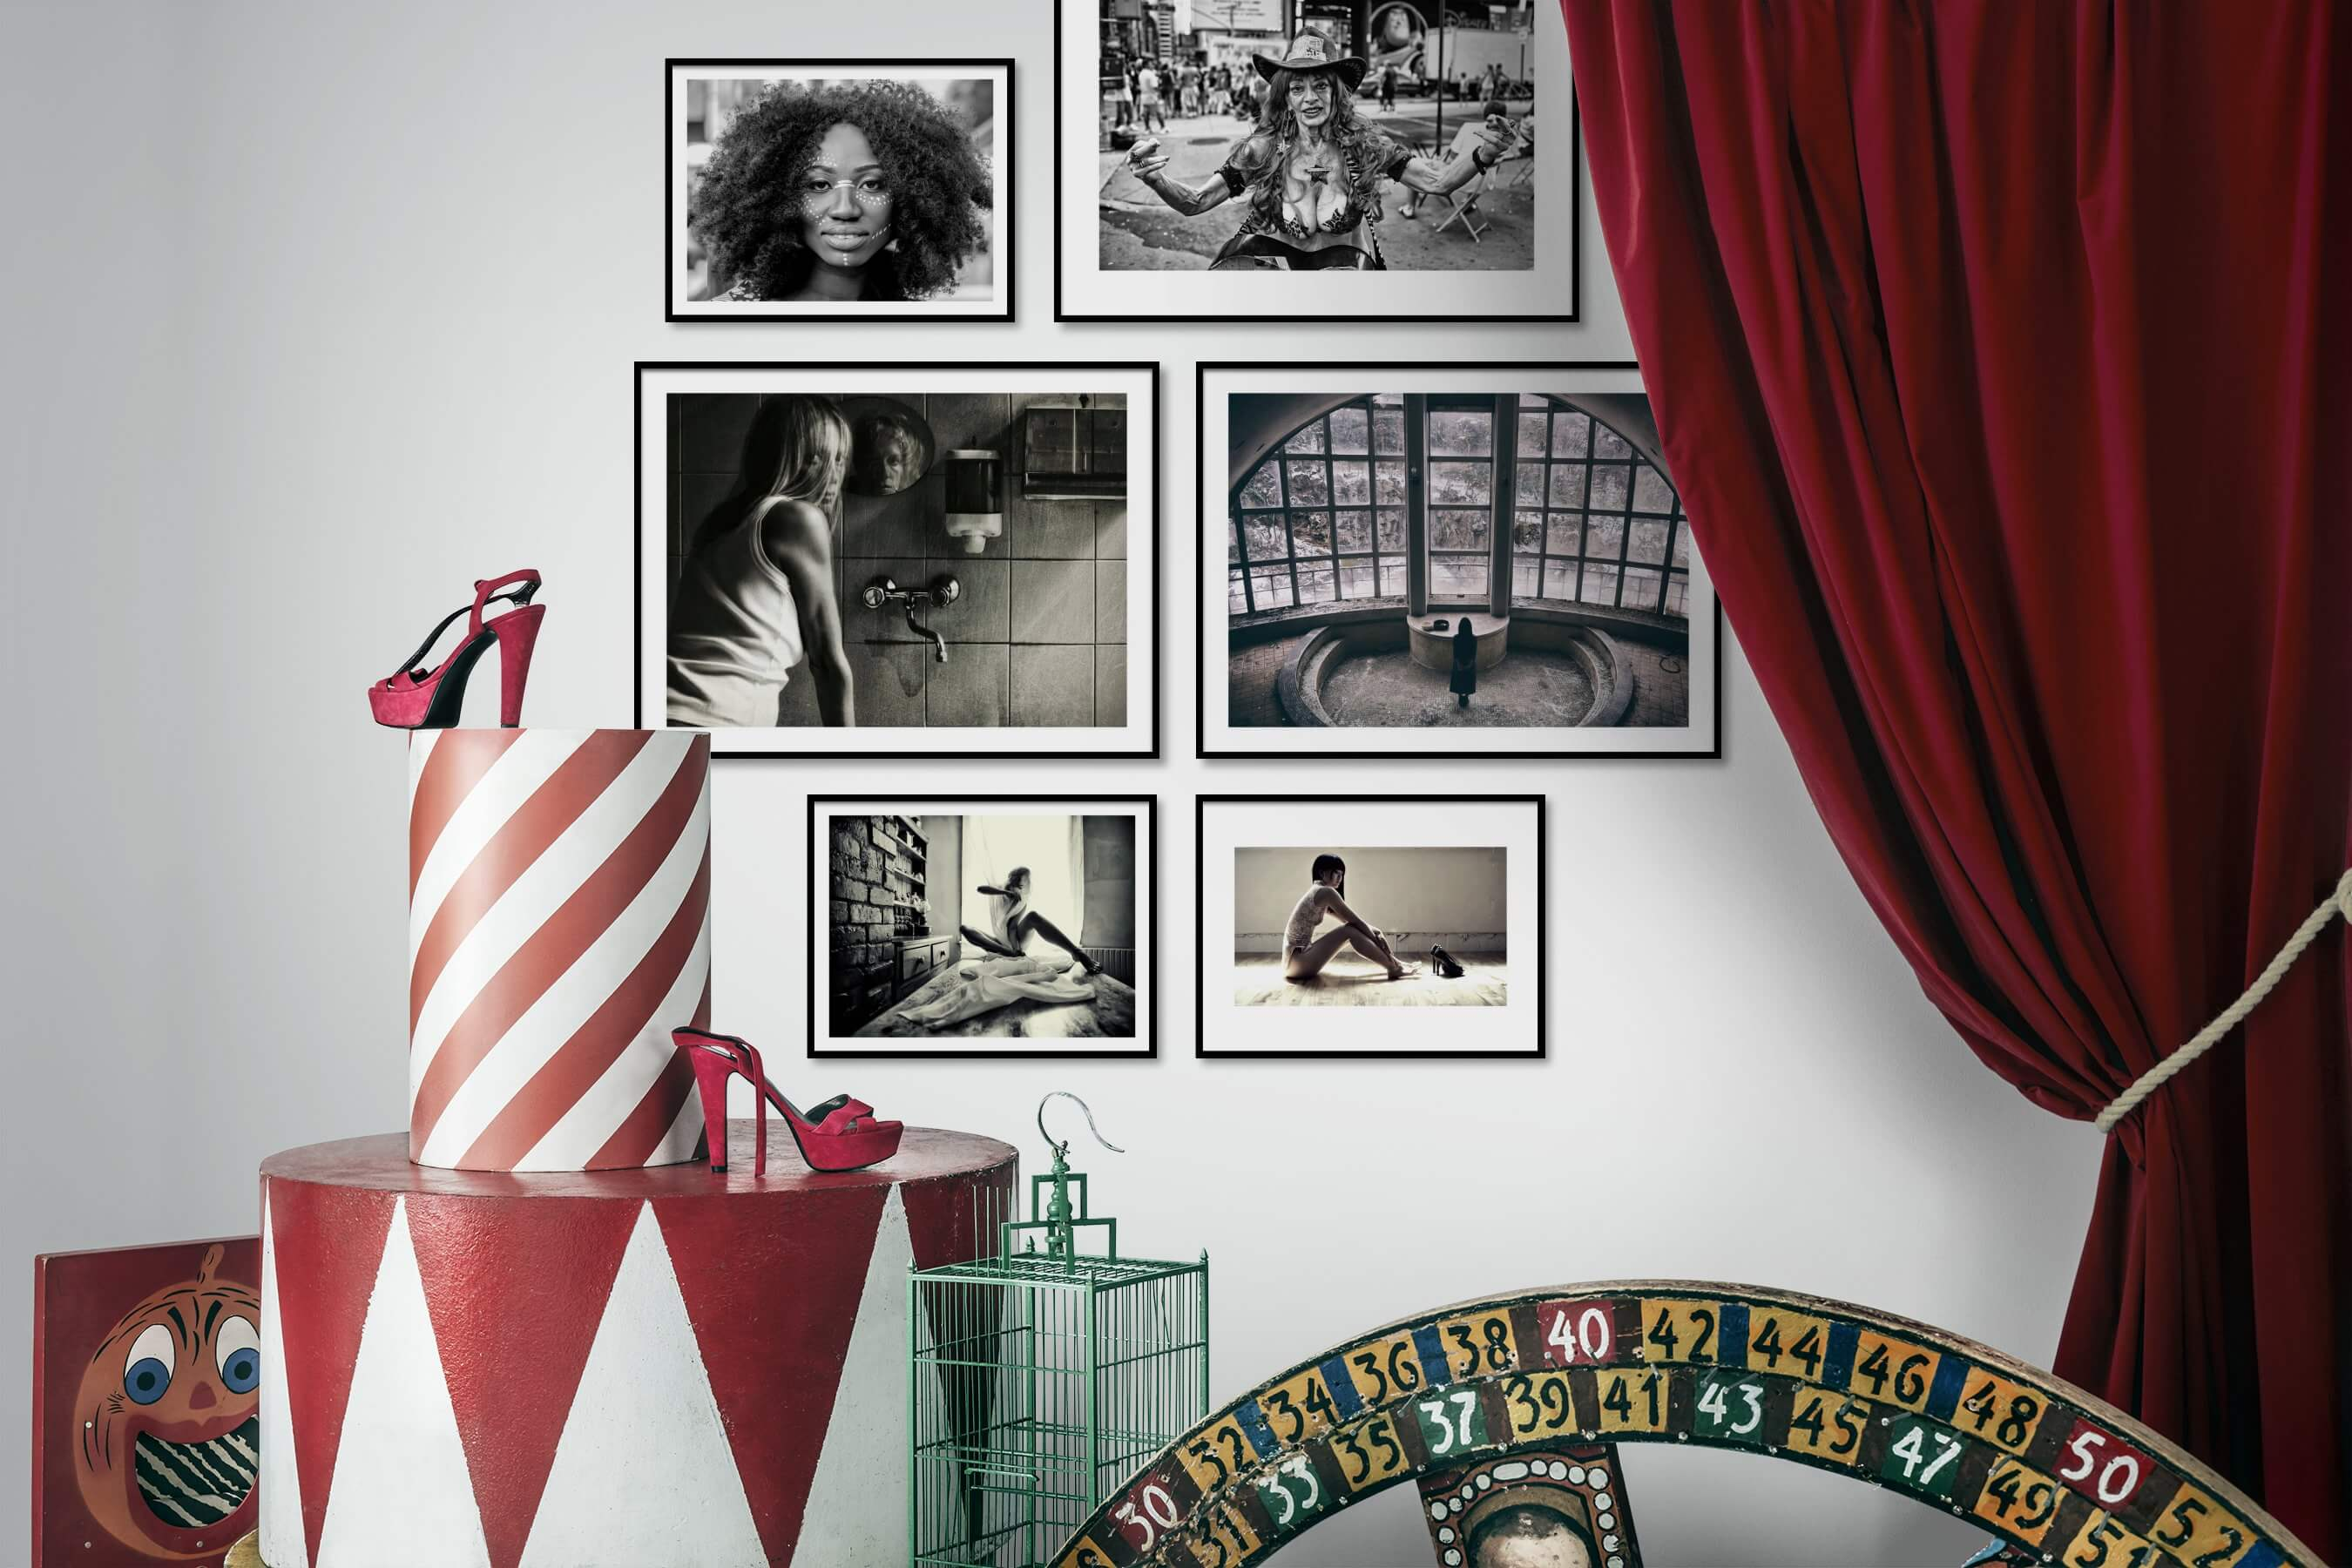 Gallery wall idea with six framed pictures arranged on a wall depicting Fashion & Beauty, Black & White, City Life, Americana, Artsy, and Vintage